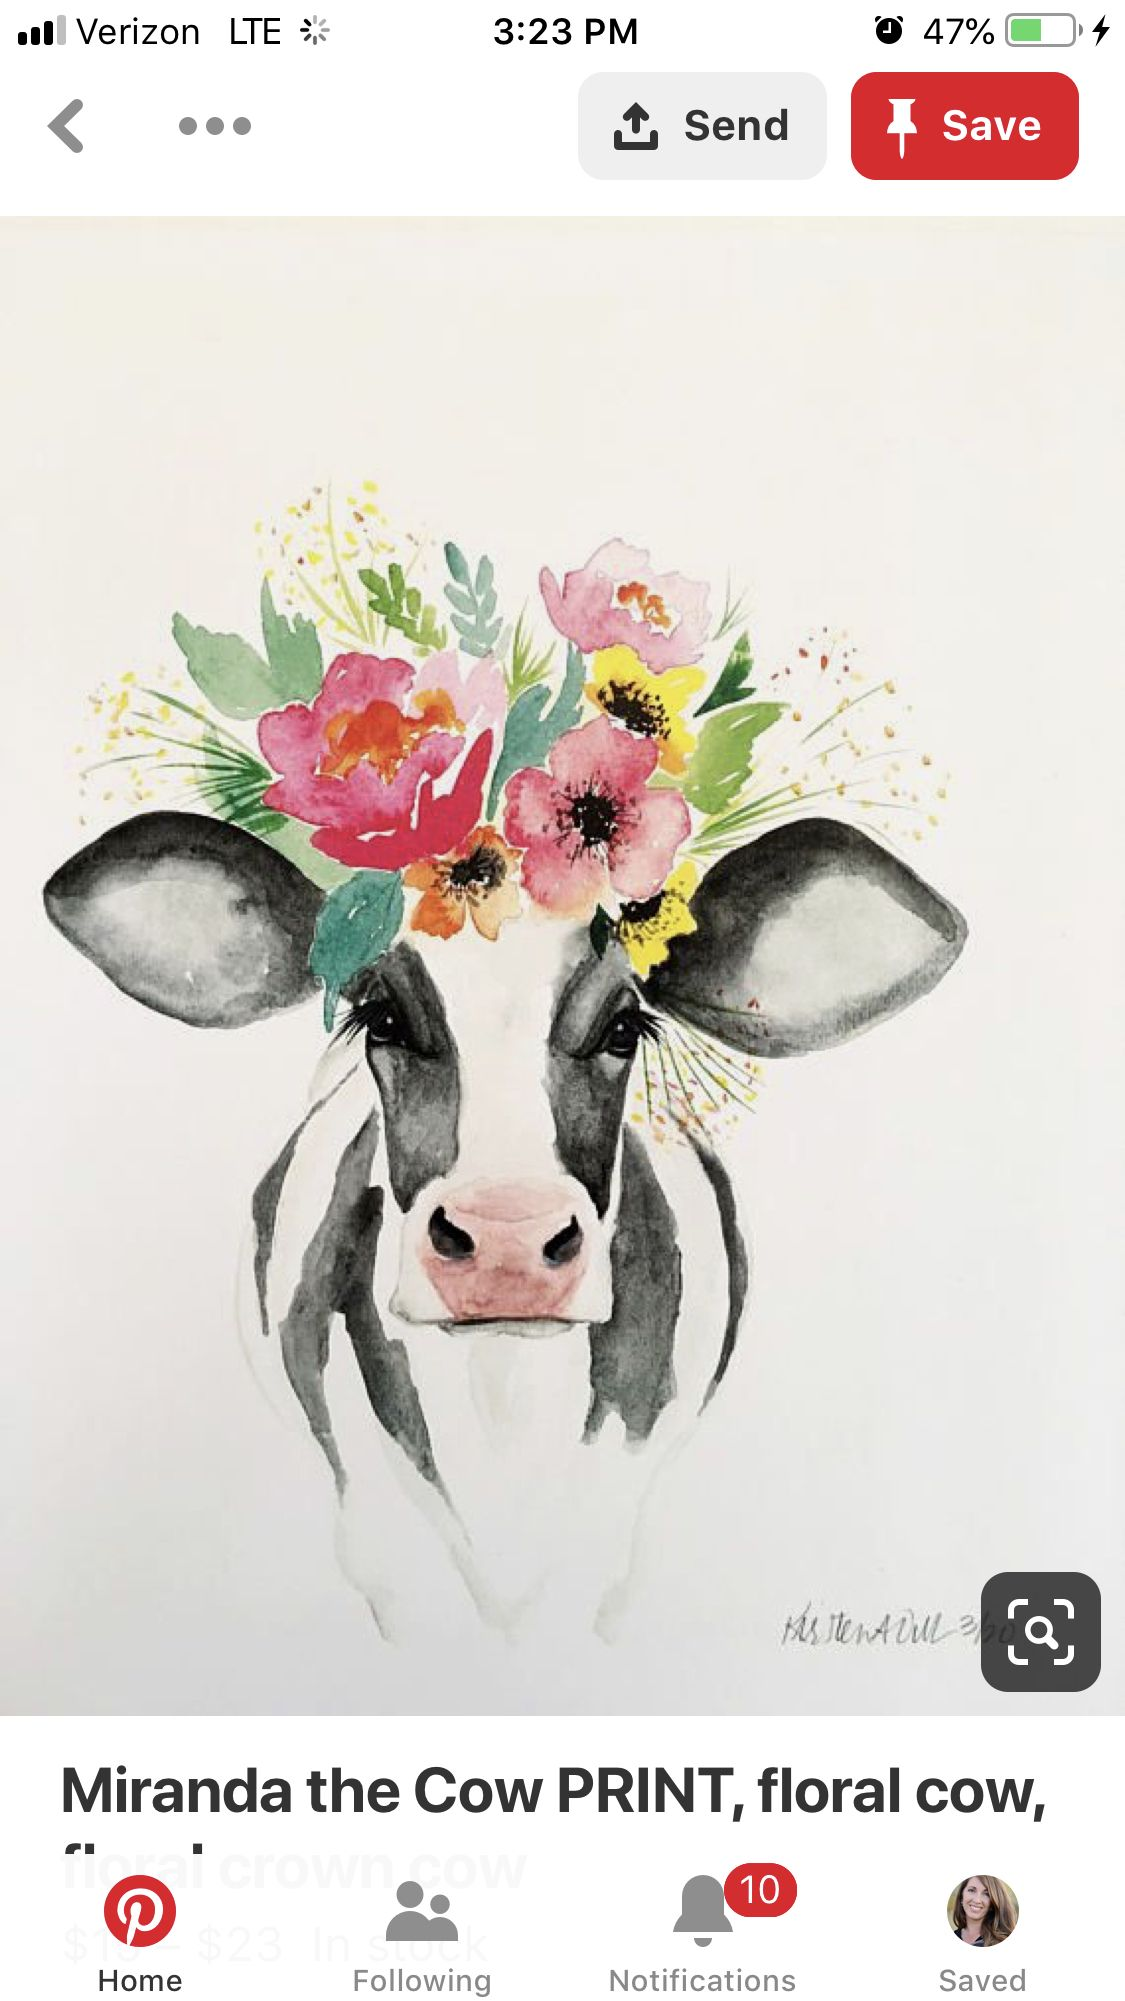 Pin by Amberlyn Prior on Art (With images) Cow art, Cow